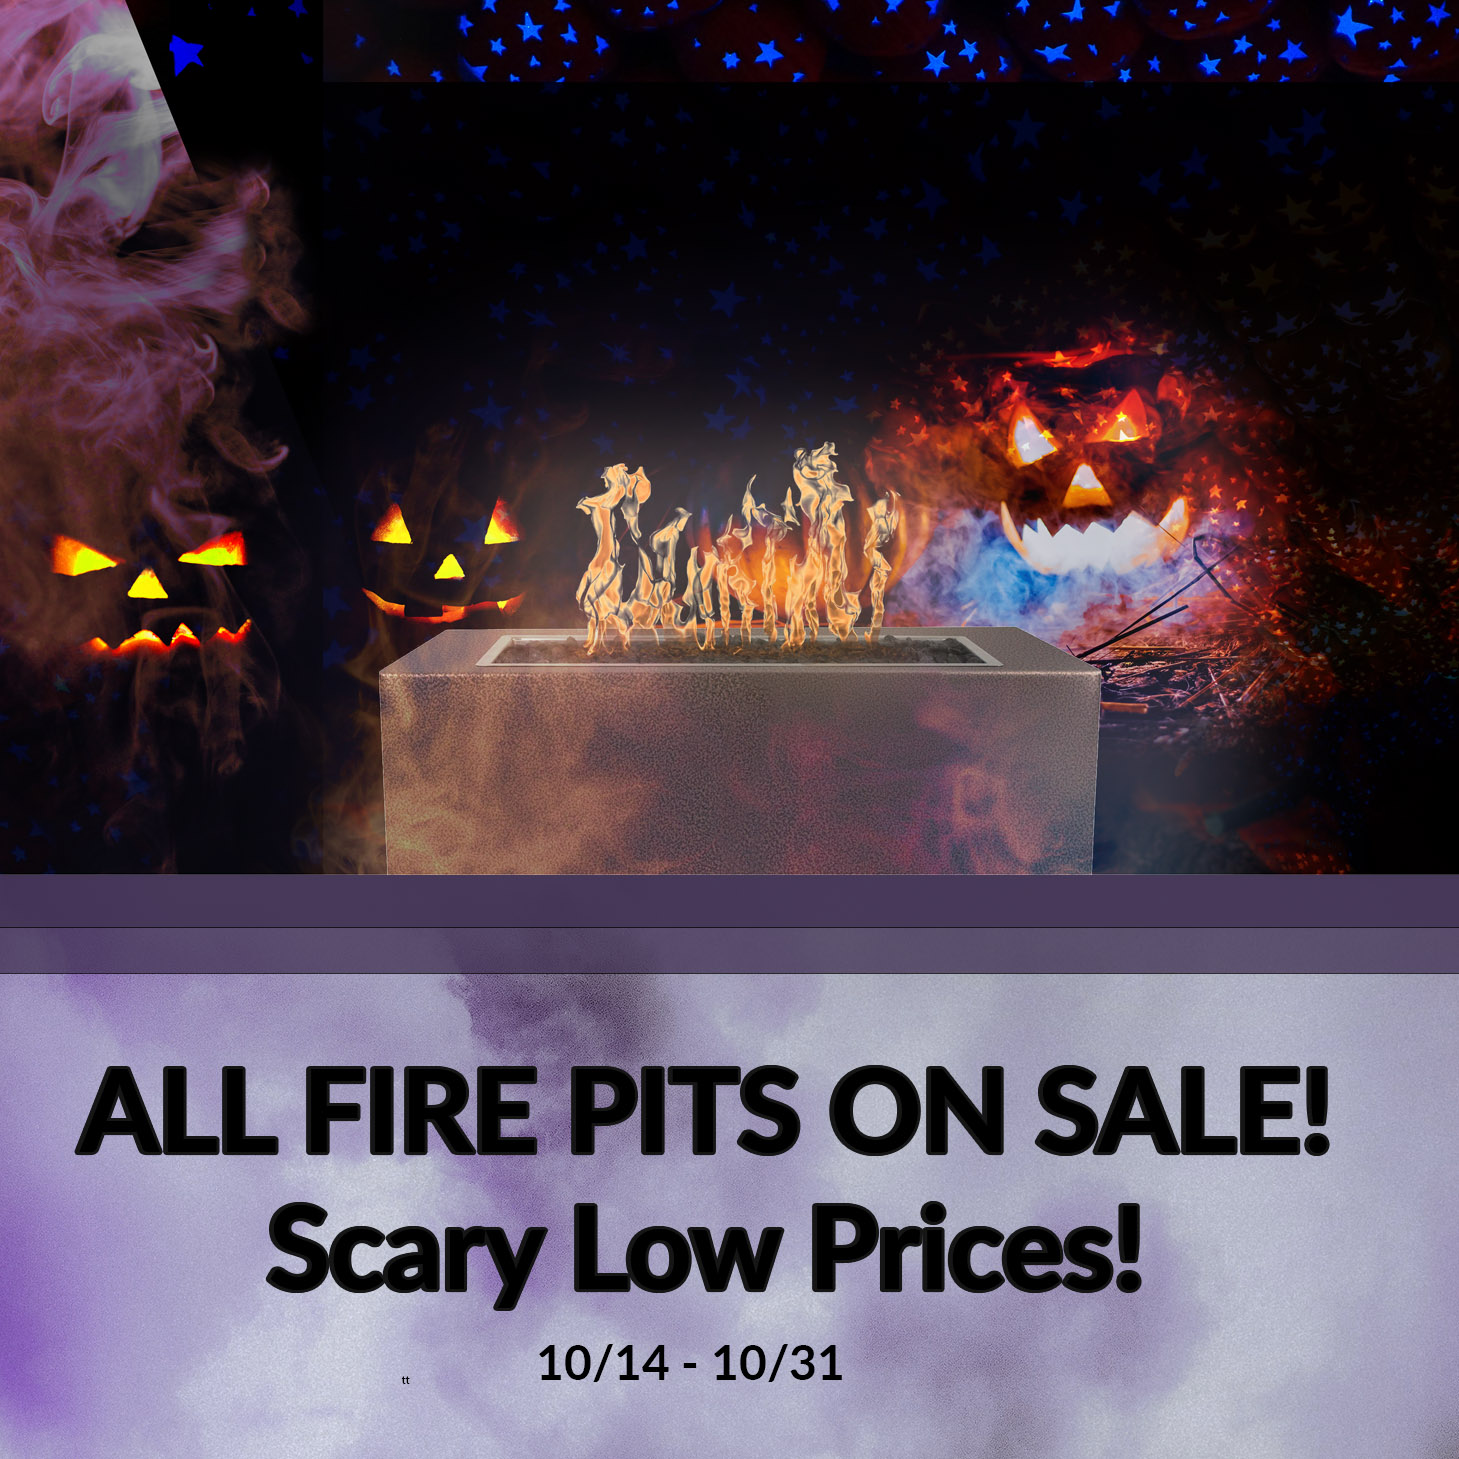 Scary Low Prices